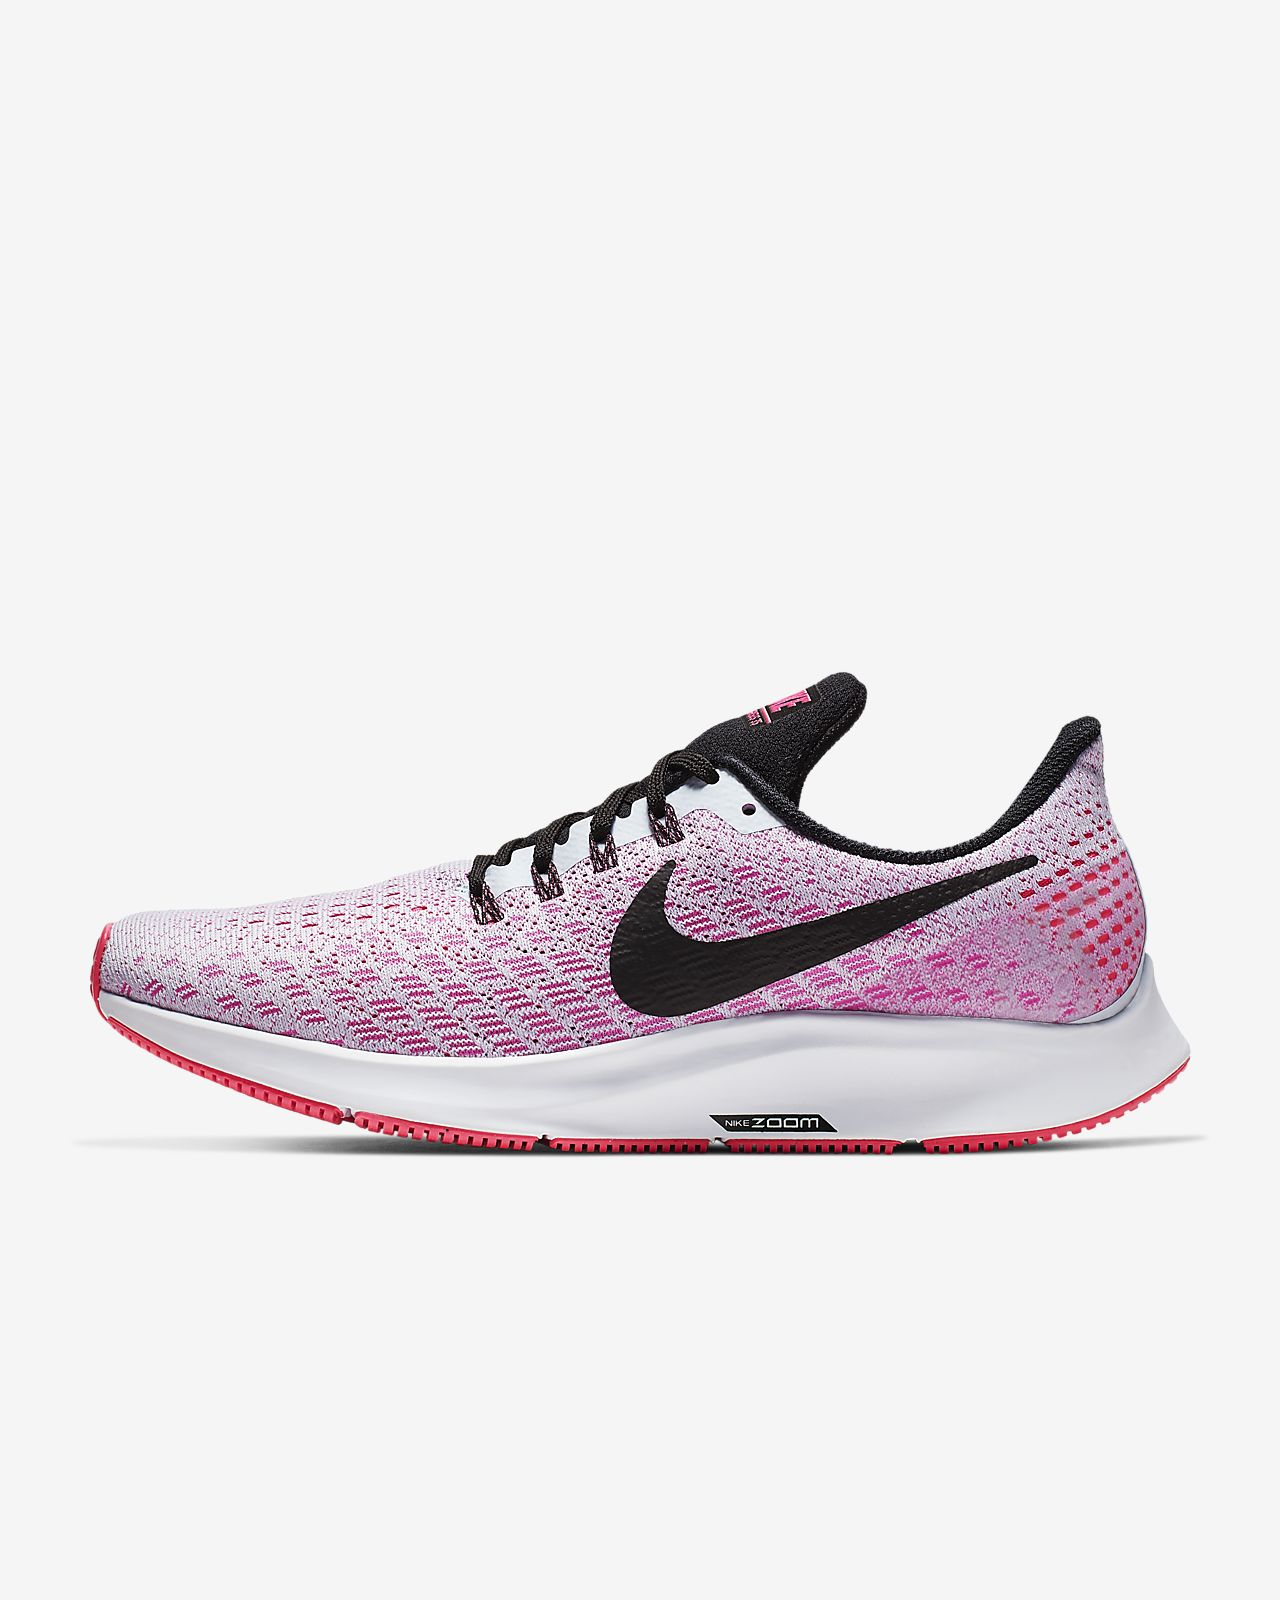 88946d8eb0ee Nike Air Zoom Pegasus 35 Women s Running Shoe. Nike.com